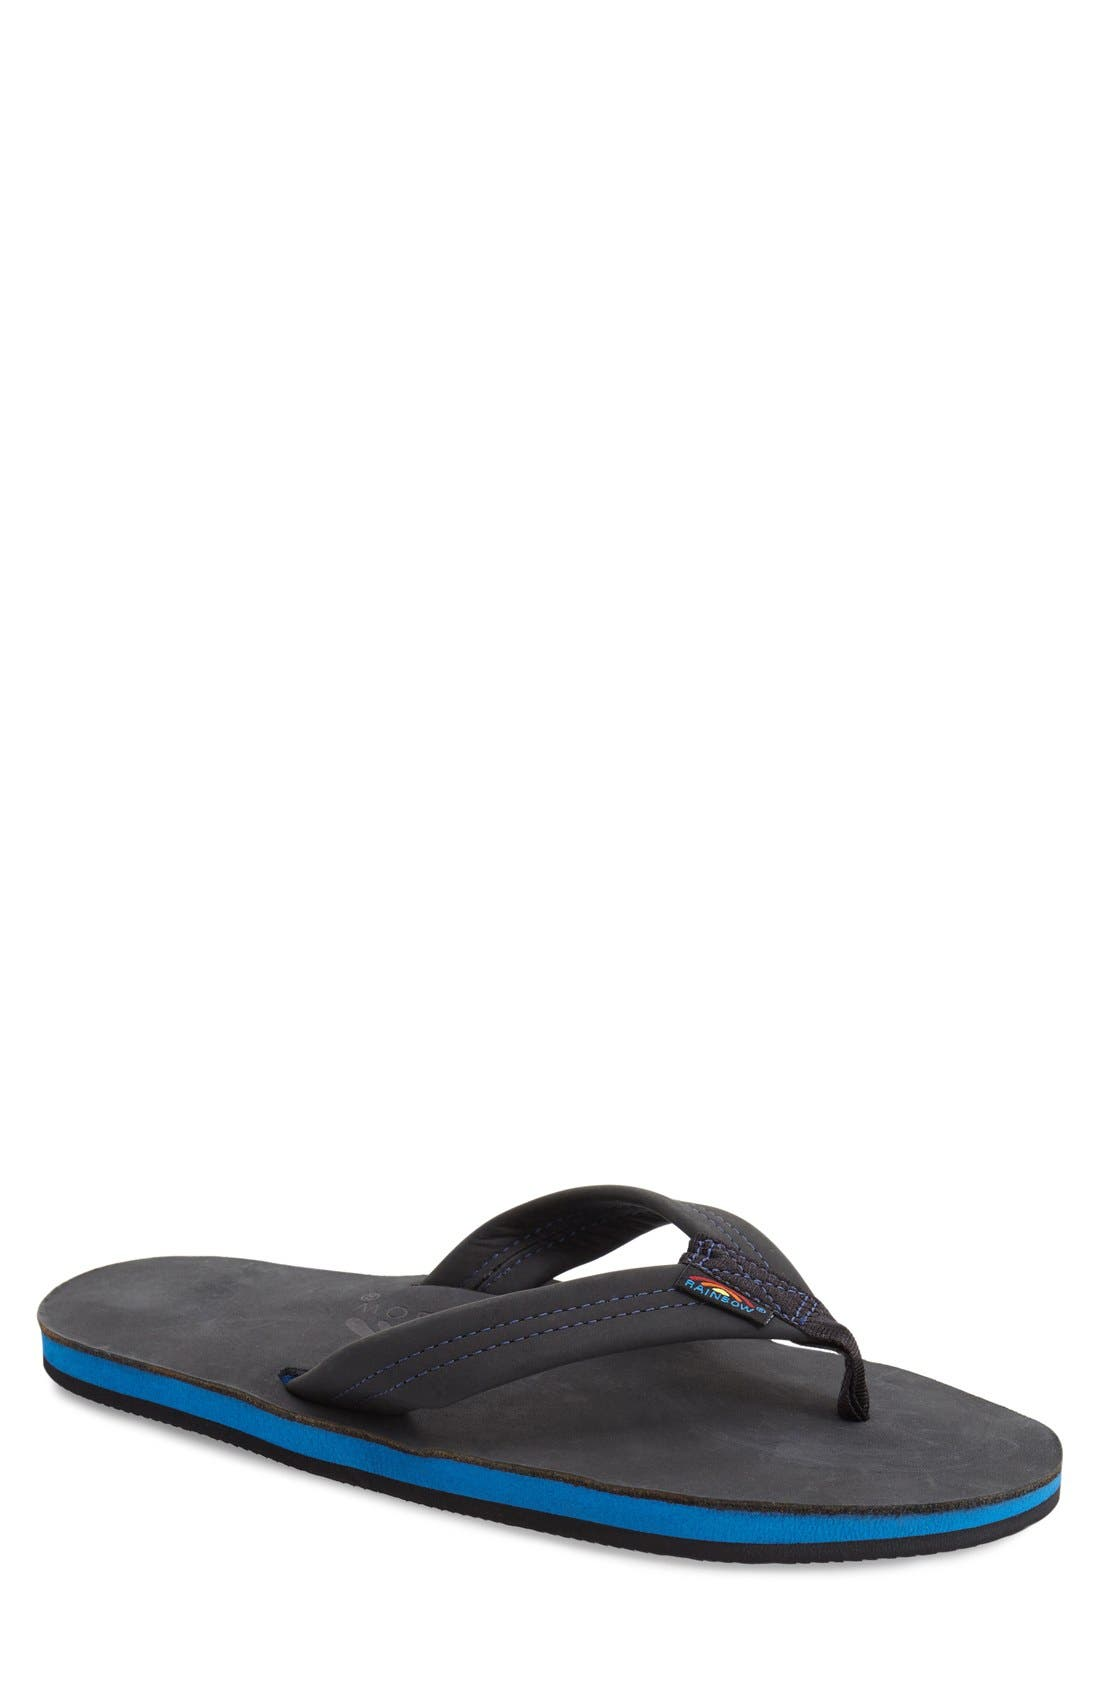 RAINBOW<SUP>®</SUP>, Rainbow '301Blue' Flip Flop, Main thumbnail 1, color, PREMIER BLACK/ BLUE MIDSOLE